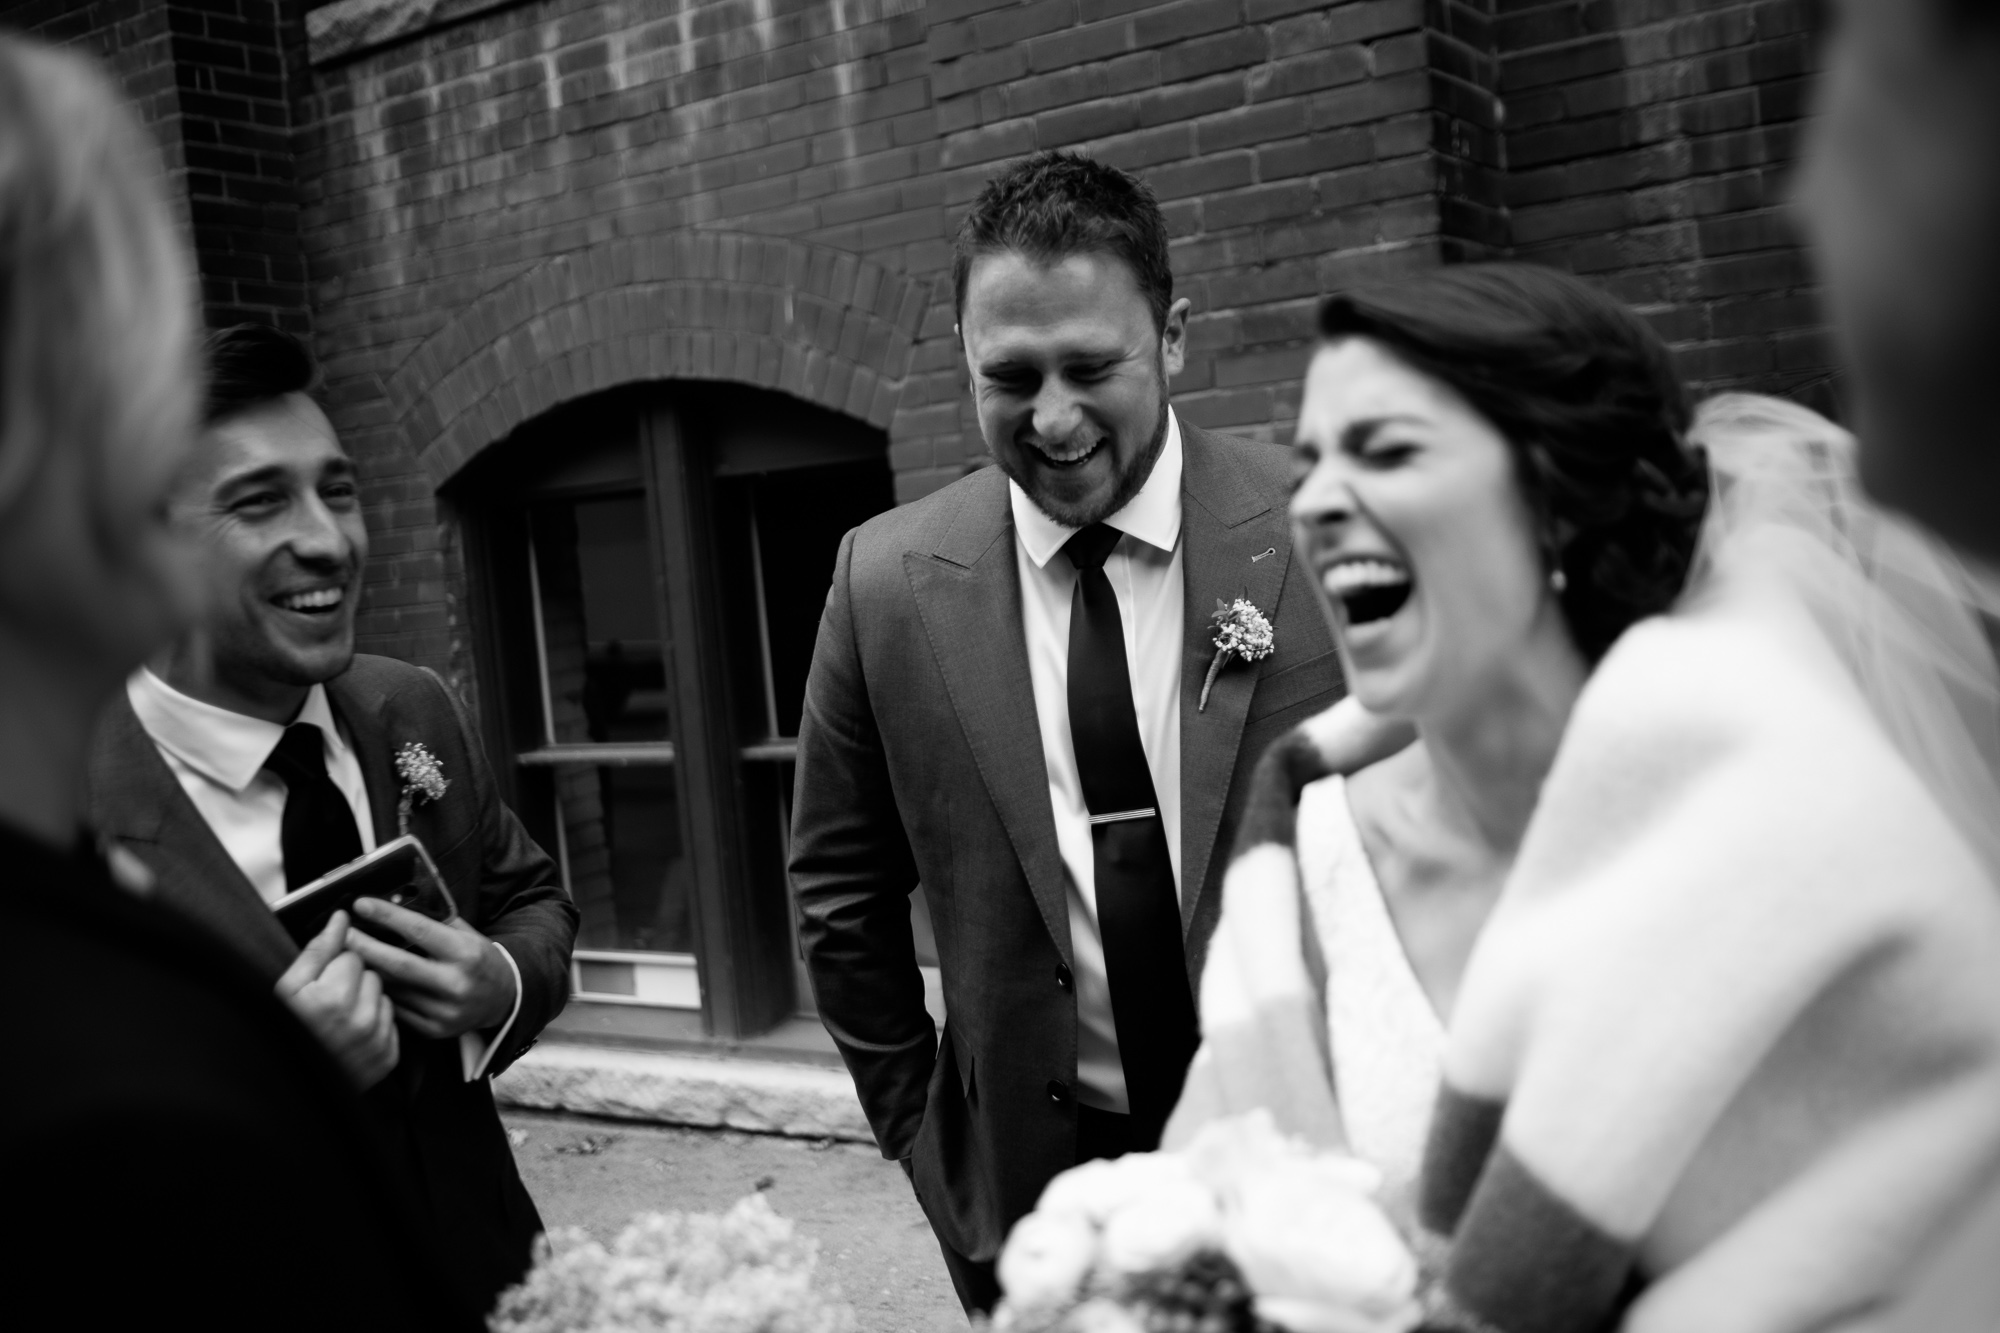 The bridal party enjoys a laugh while we photograph the wedding party portraits in Toronto's Liberty Village.